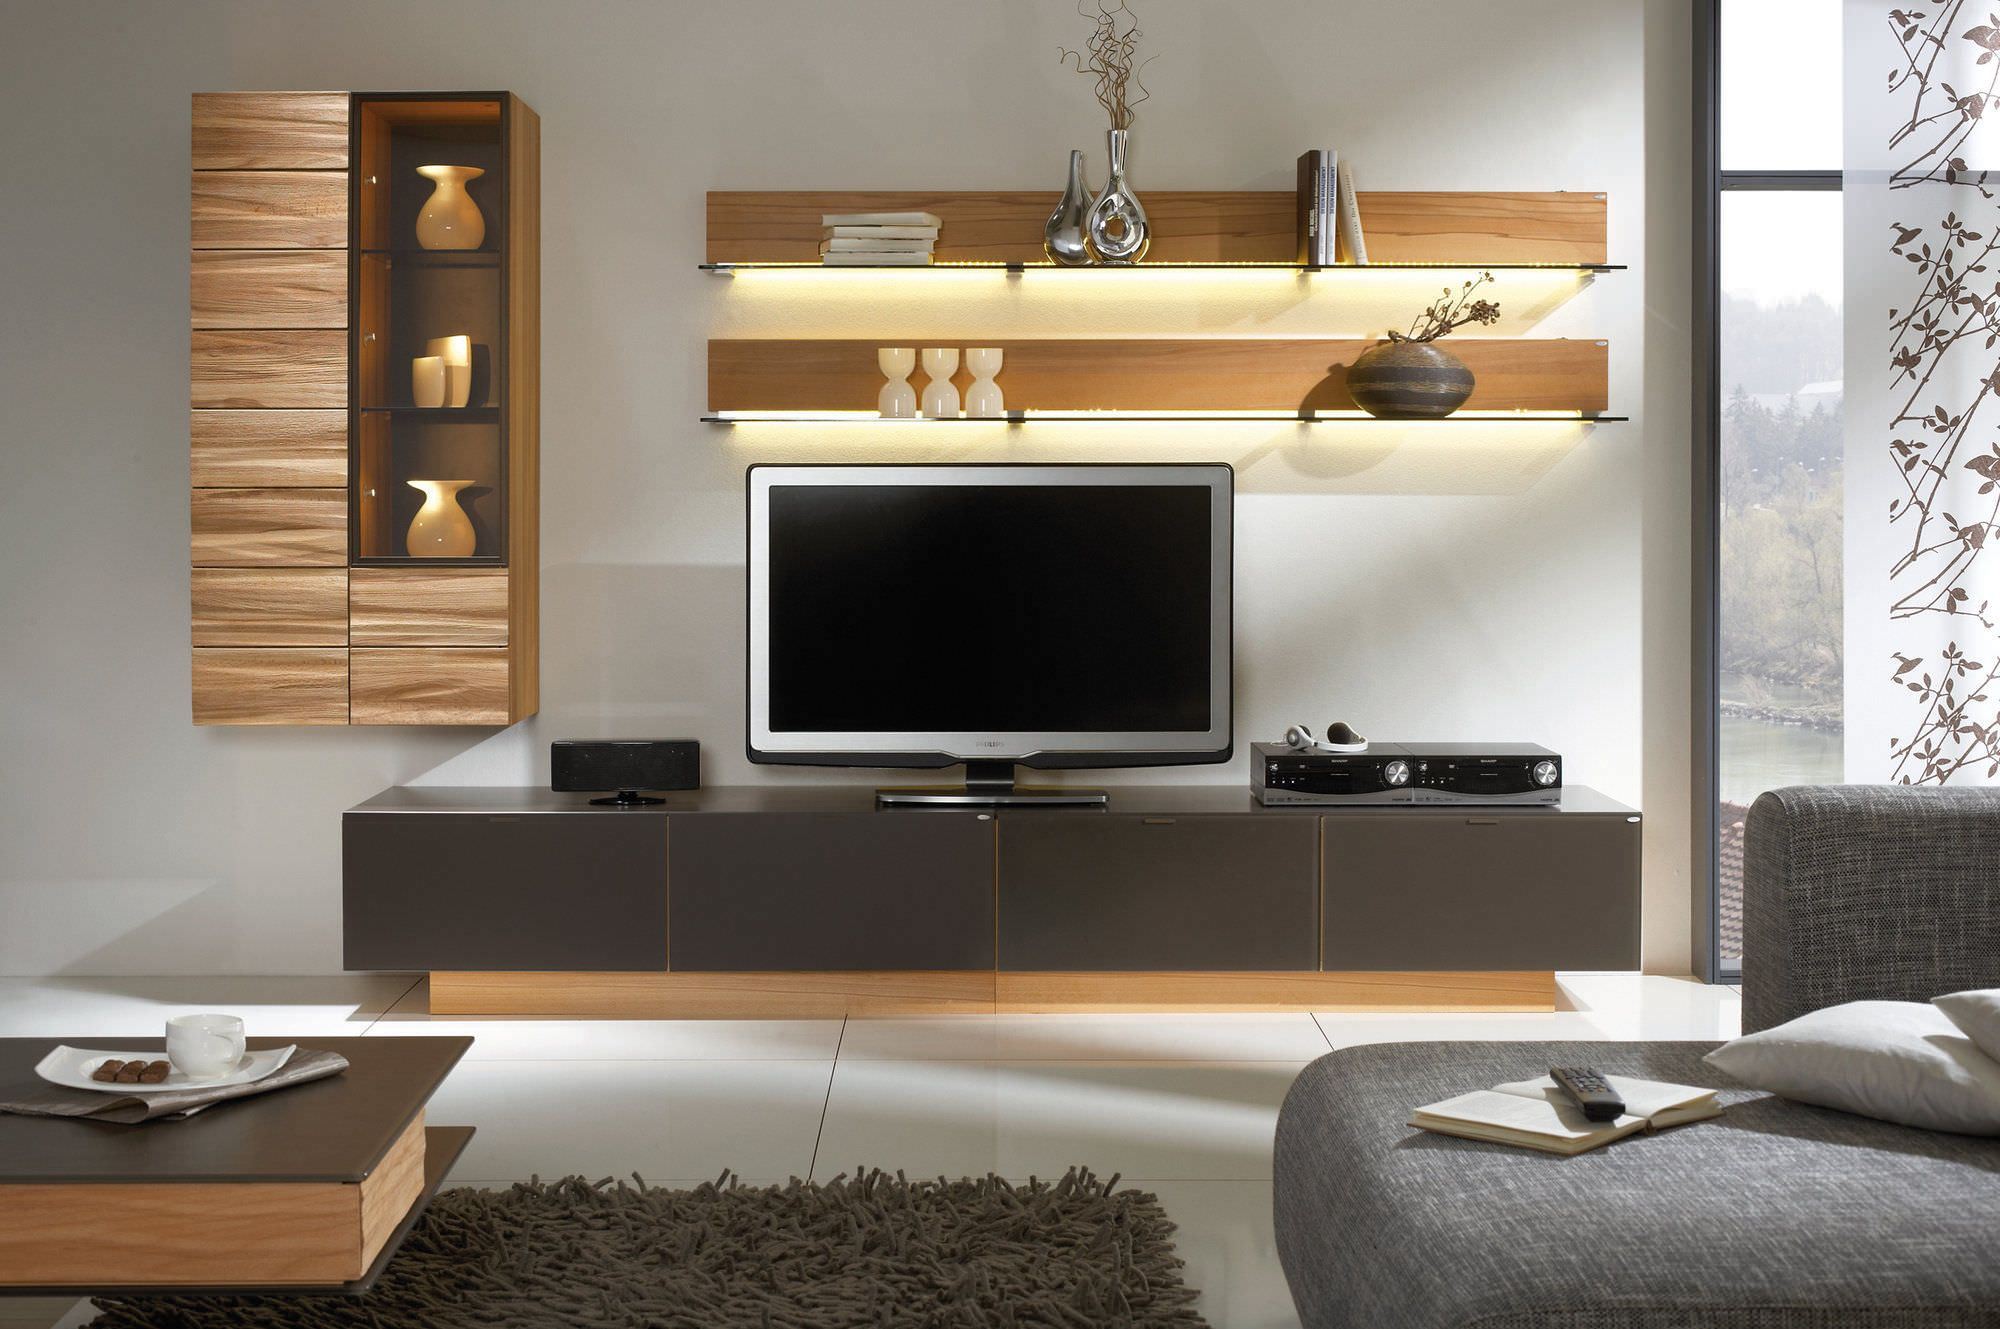 Awesome white brown wood glass cool design contemporary tv for Armoire tv design